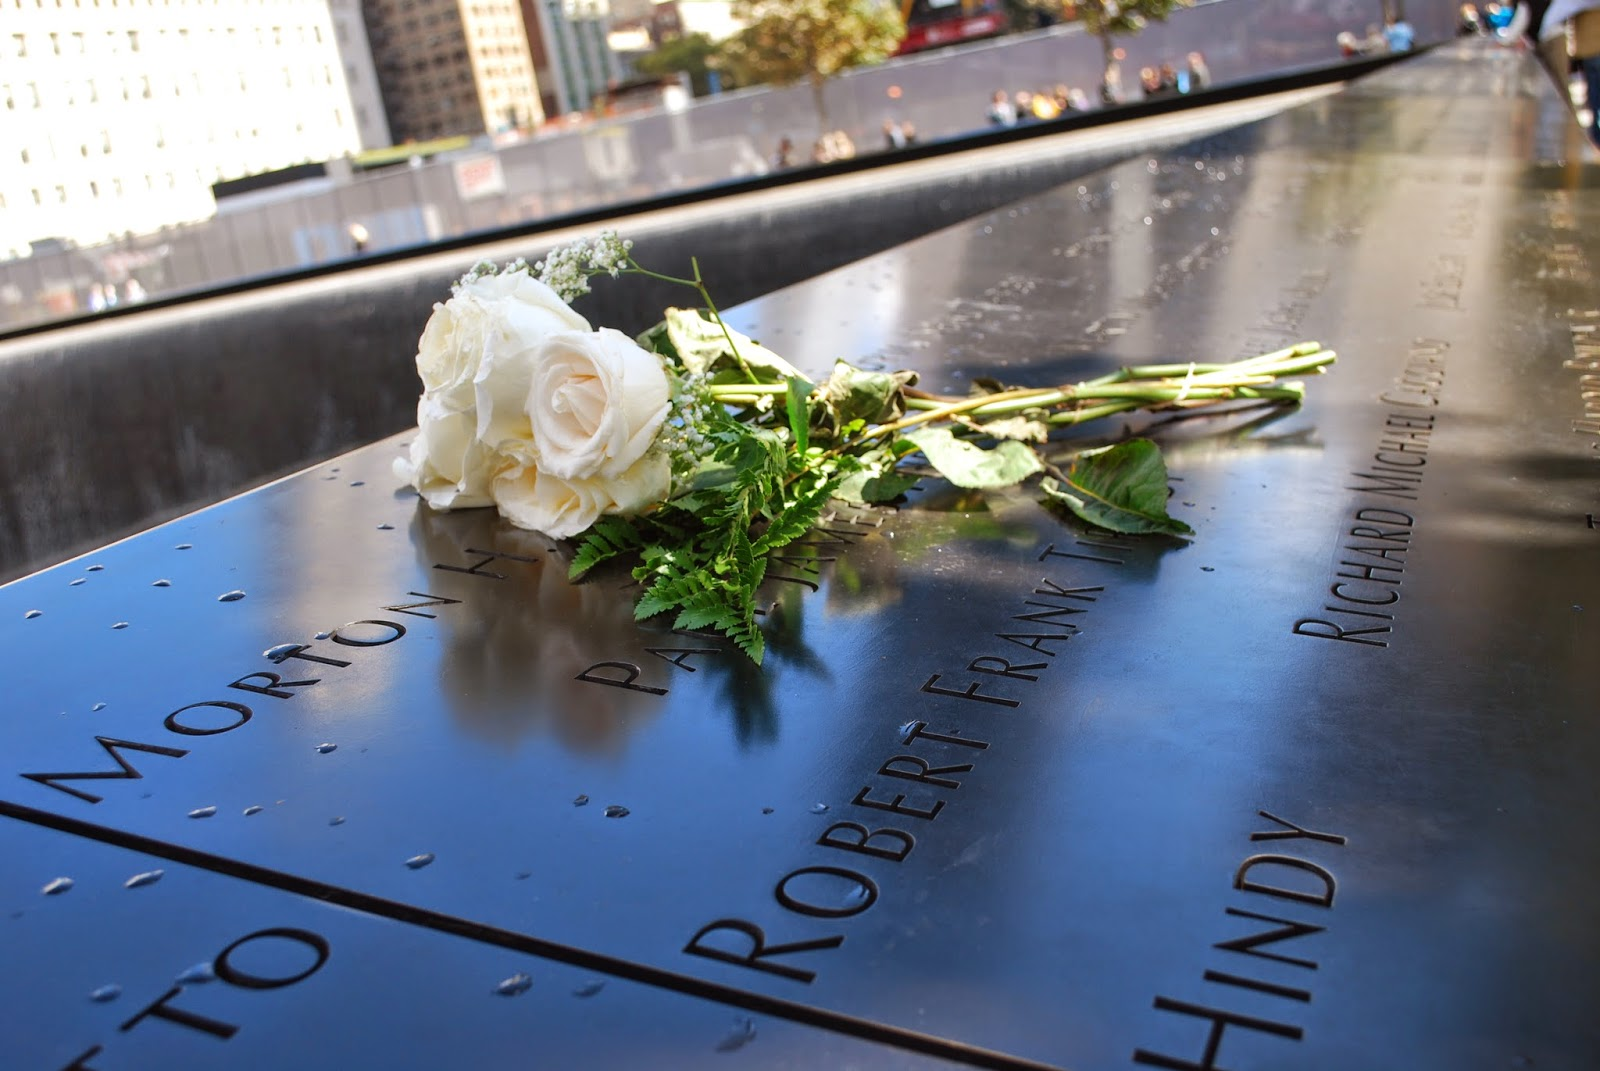 honor 9-11, never forget